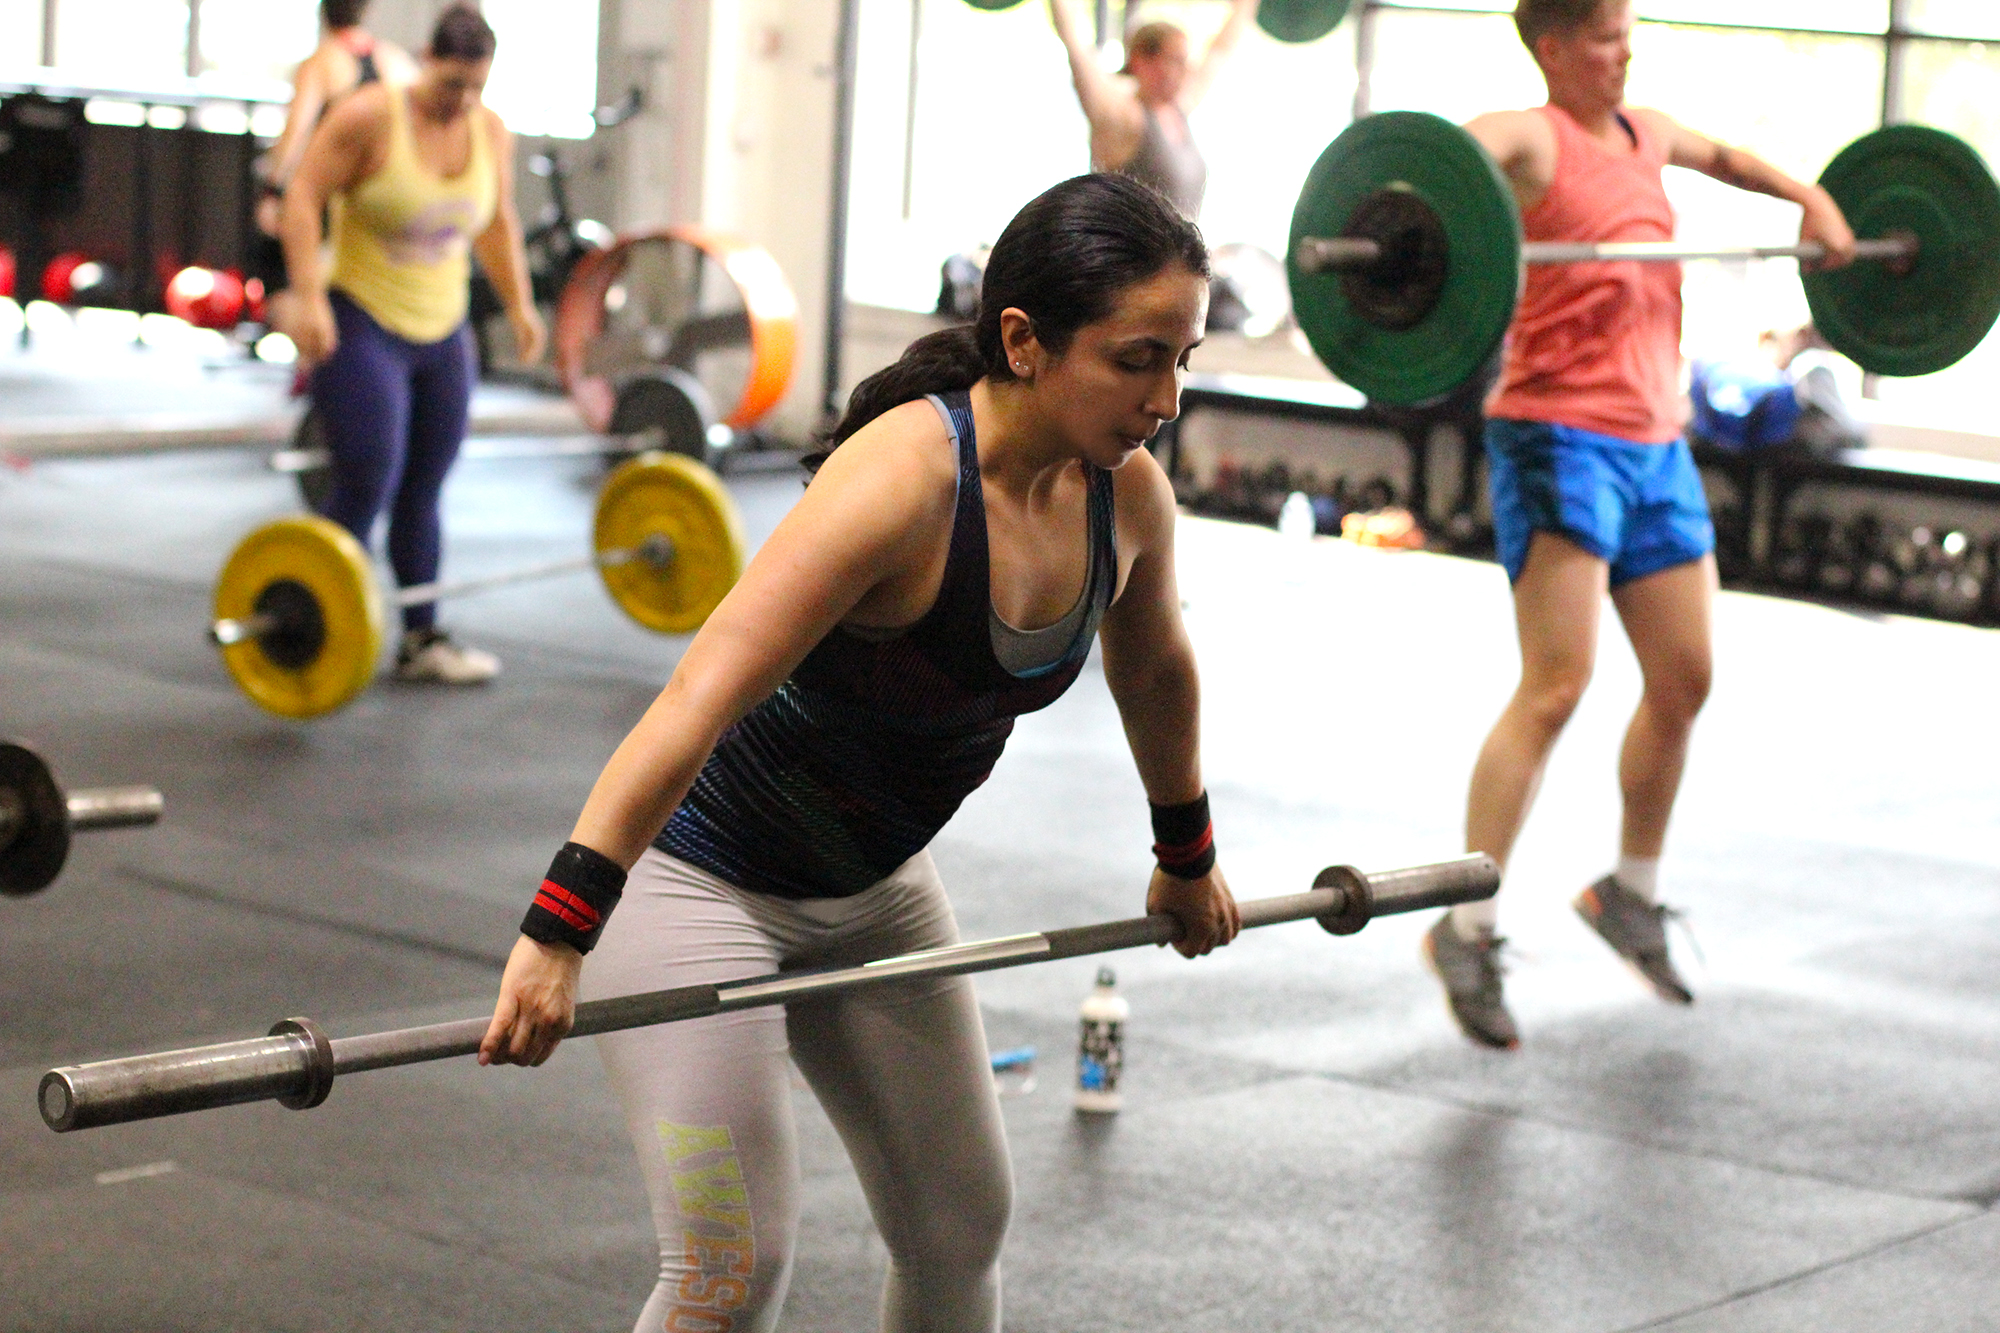 """This is one of our newest members, Diana Soler. Here is what she has to say about her experience so far:  """"People from all walks of life end up in a class together, sweat together, suffer together and work hard on weaknesses together. Through these experiences they become friends and walls are broken down."""""""